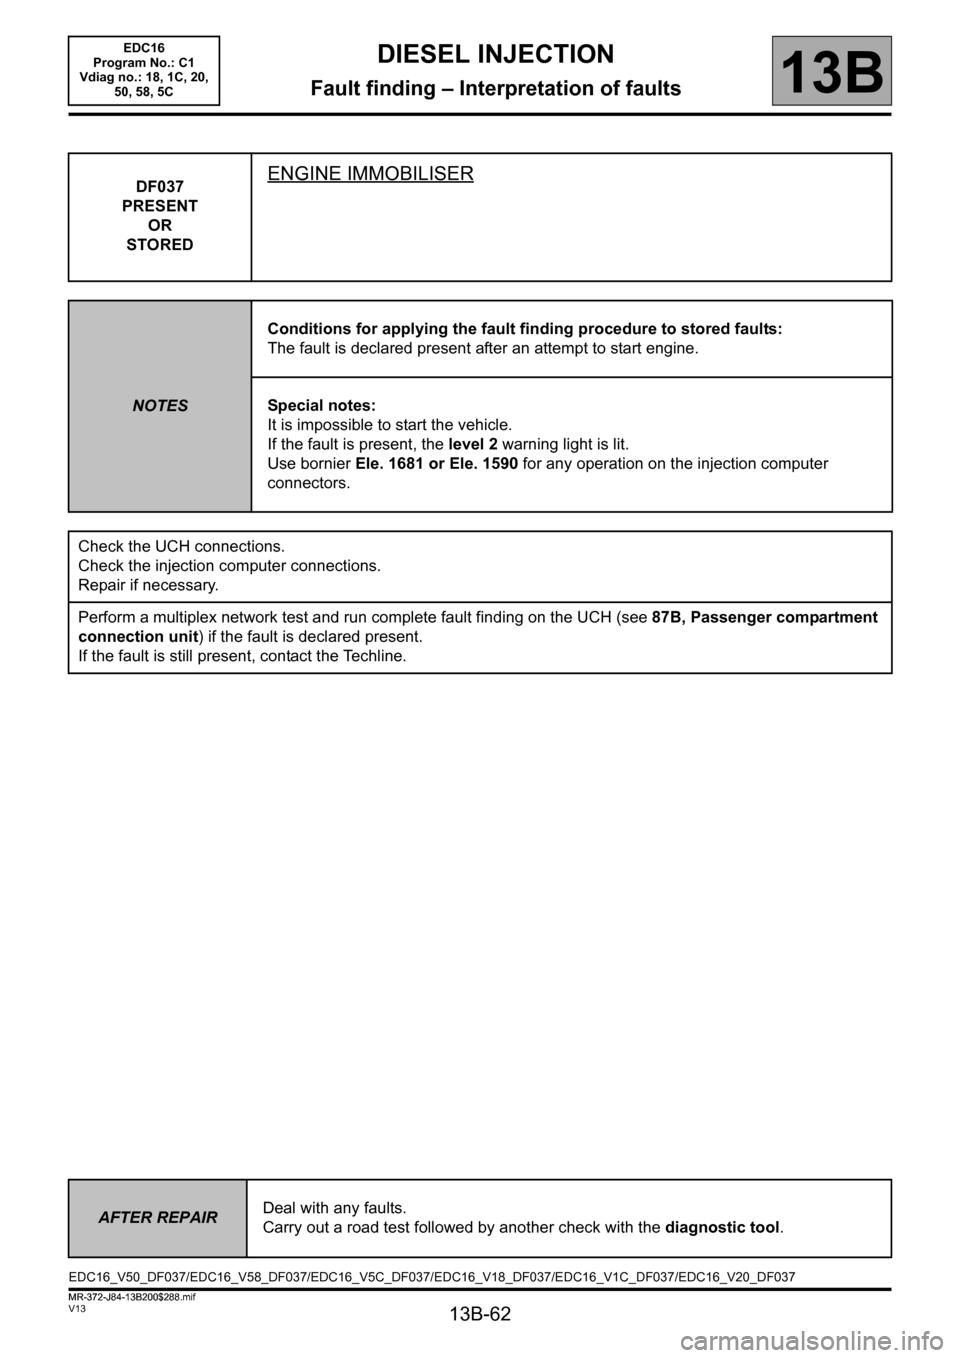 RENAULT SCENIC 2011 J95 / 3.G Engine And Peripherals EDC16 Workshop Manual, Page 62